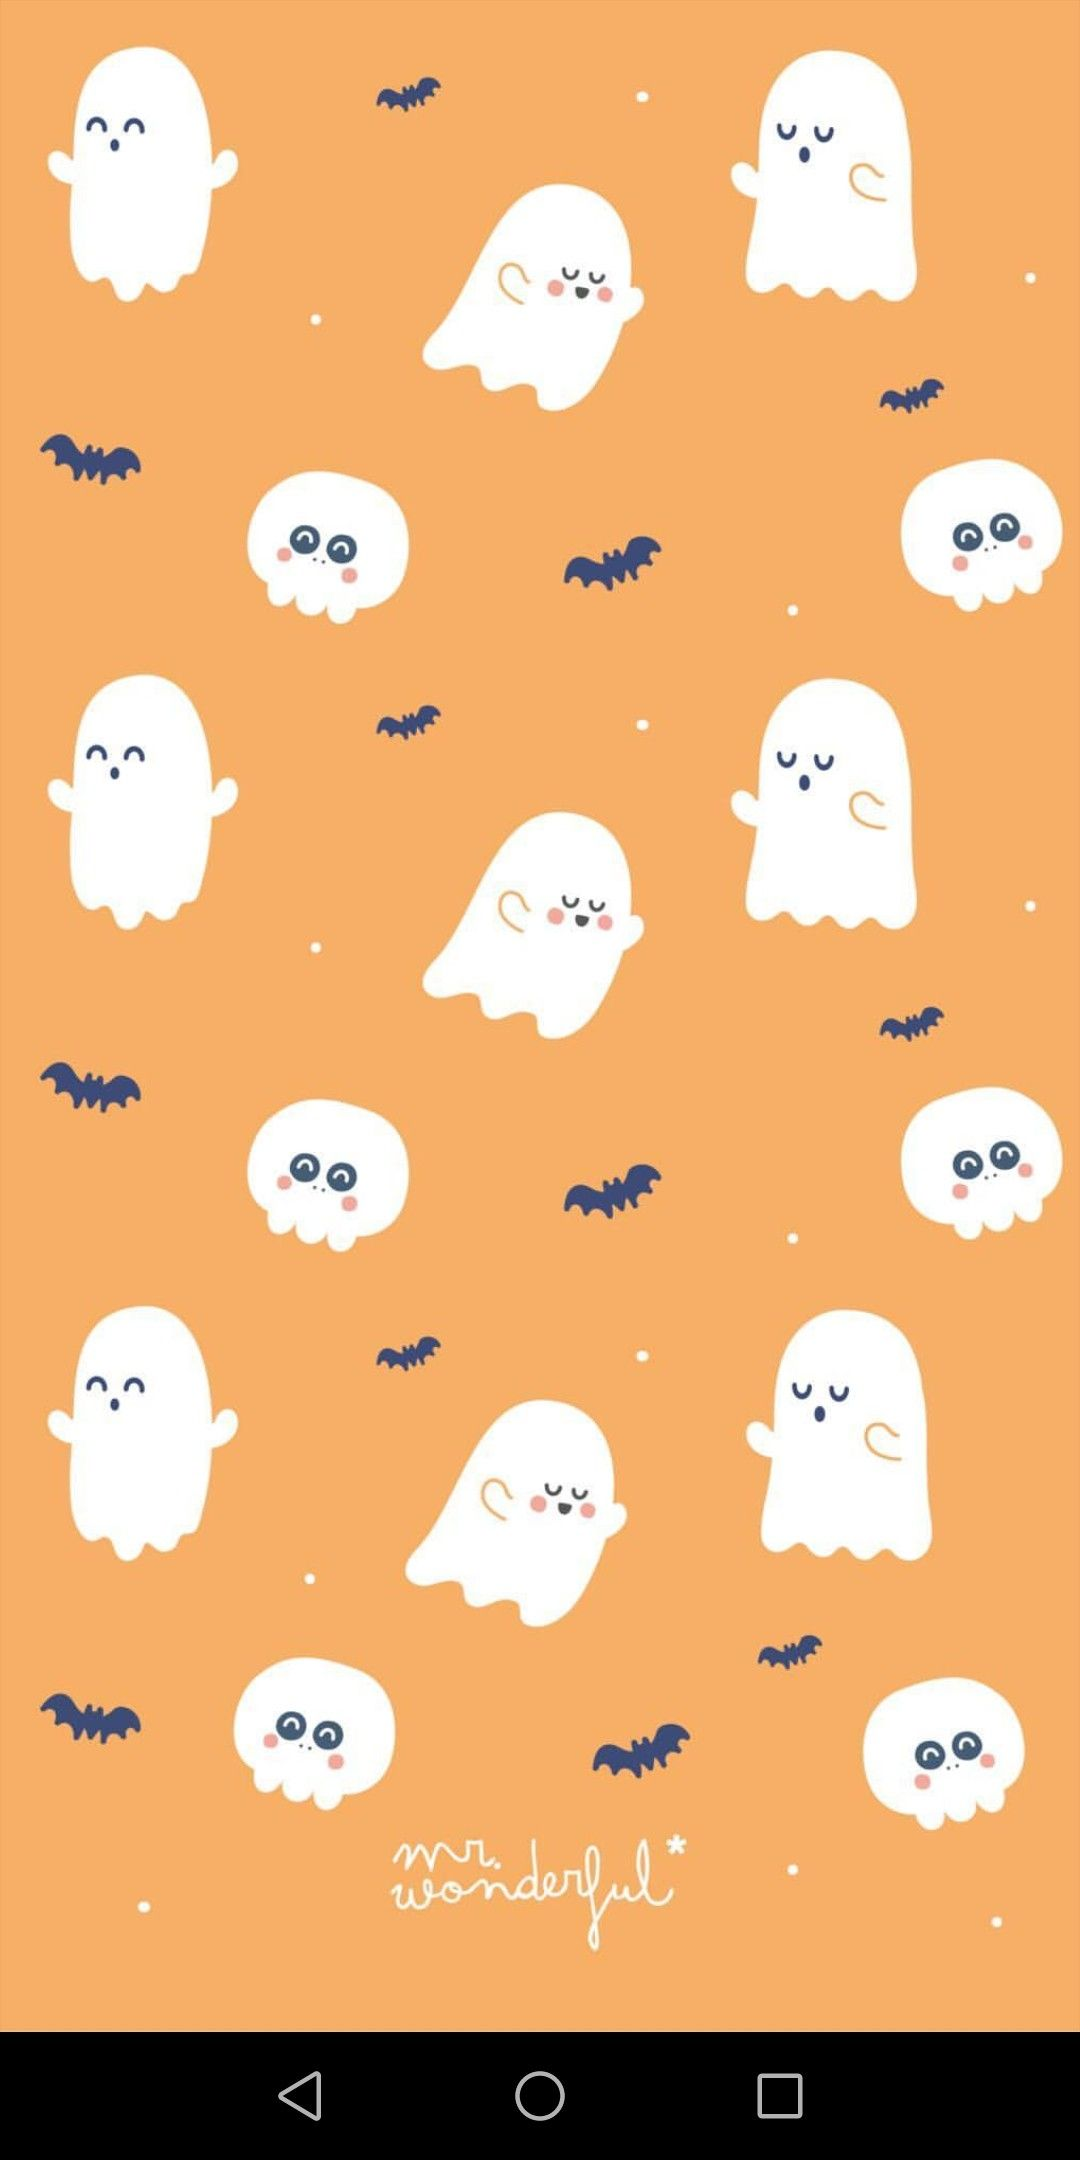 Pin By Ana Bonilla On Celebrations Halloween Wallpaper Iphone Pretty Wallpapers Witchy Wallpaper